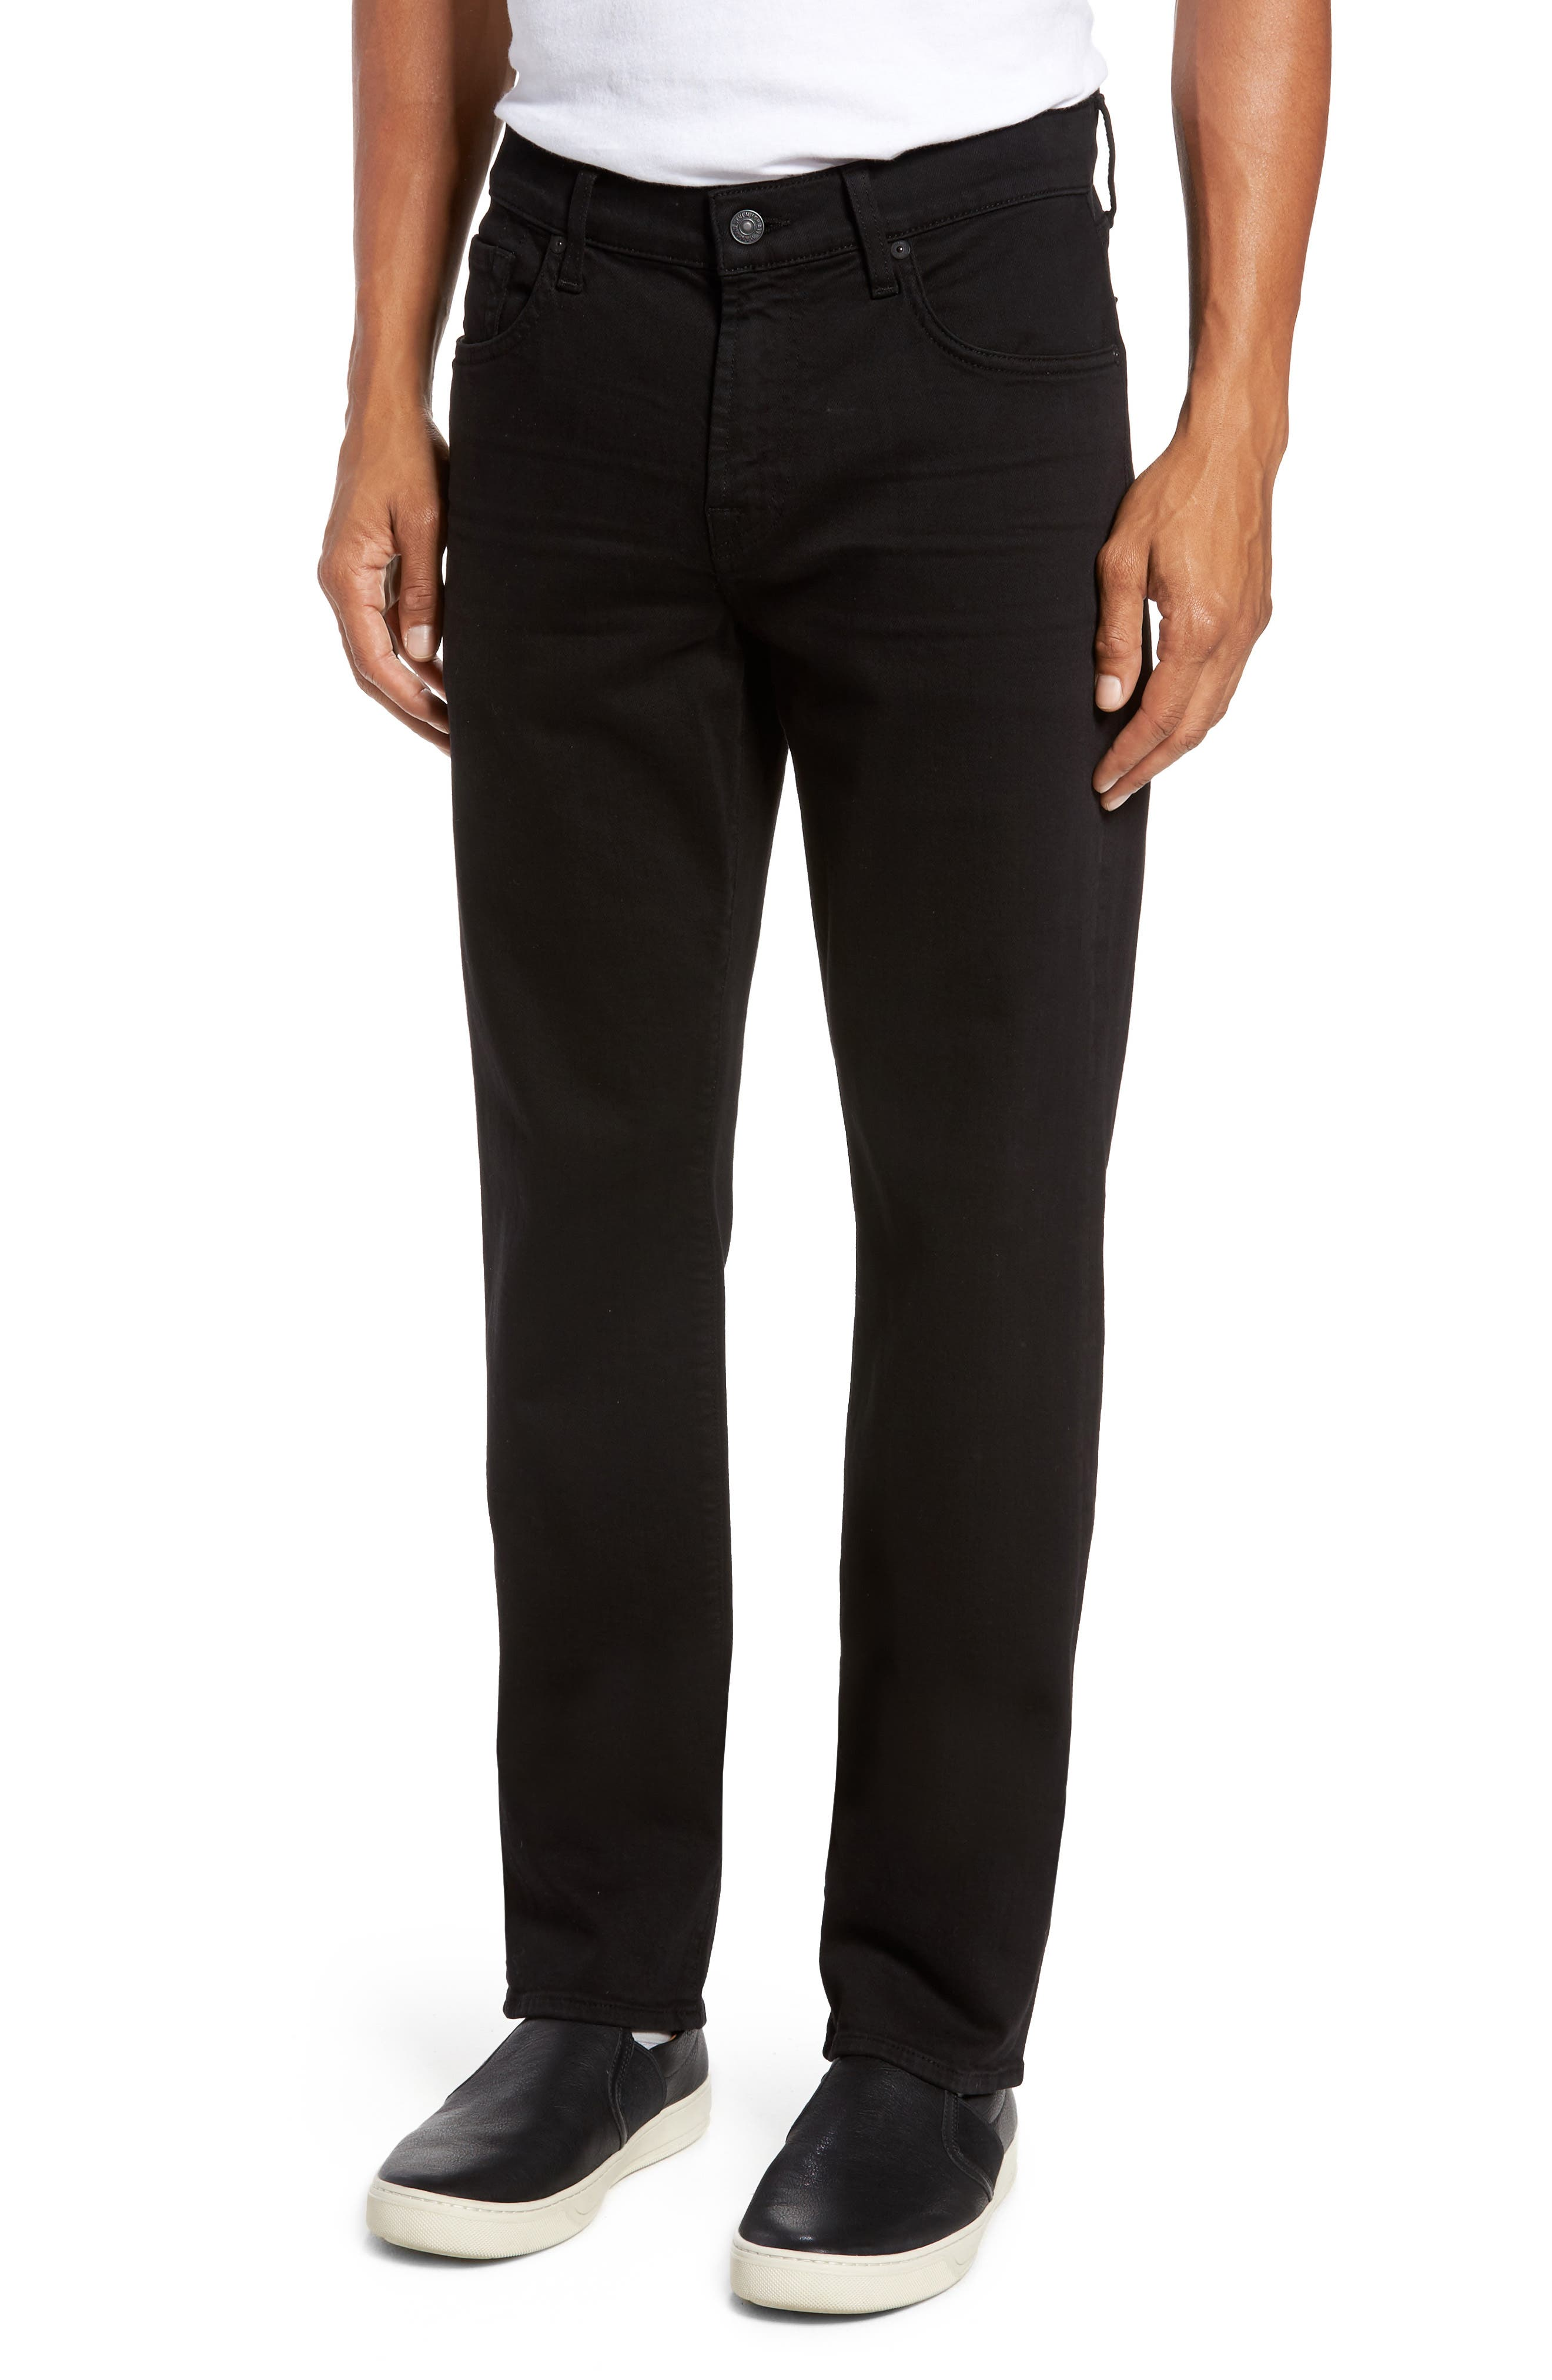 7 FOR ALL MANKIND<SUP>®</SUP>, Luxe Performance - Slimmy Slim Fit Jeans, Main thumbnail 1, color, ANNEX BLACK